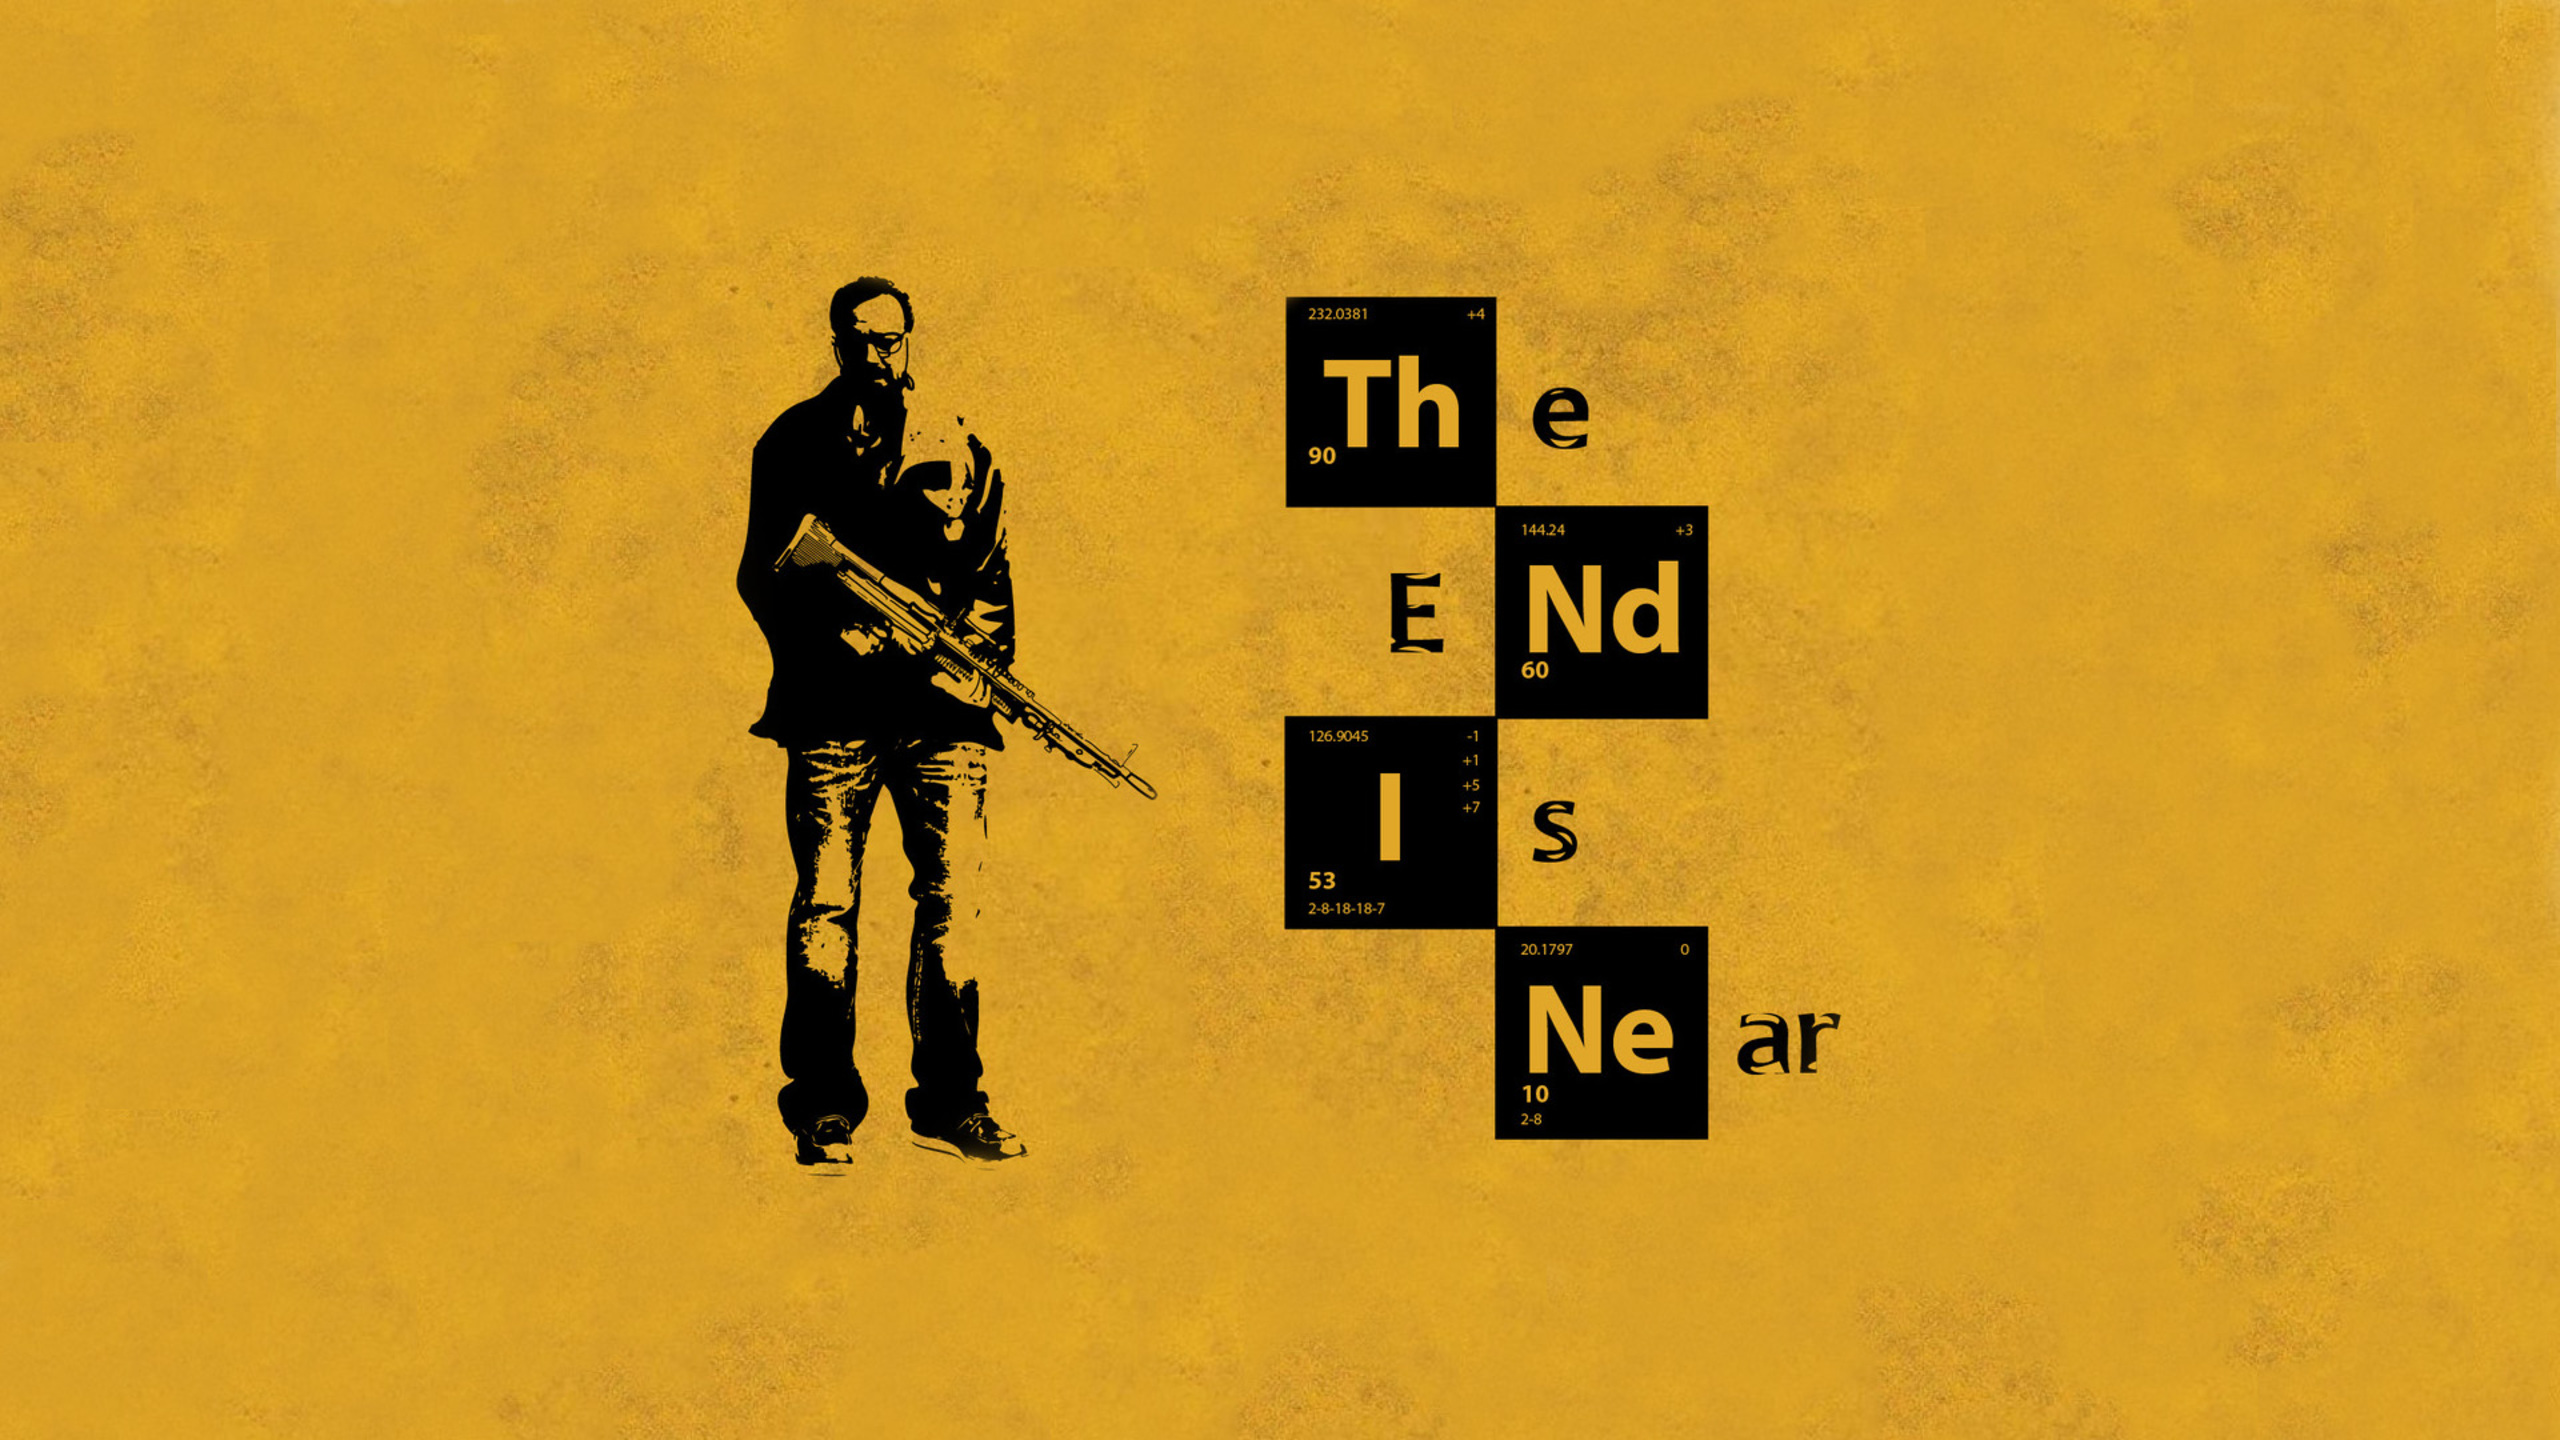 2560x1440 The End Is Near Breaking Bad 1440P Resolution HD